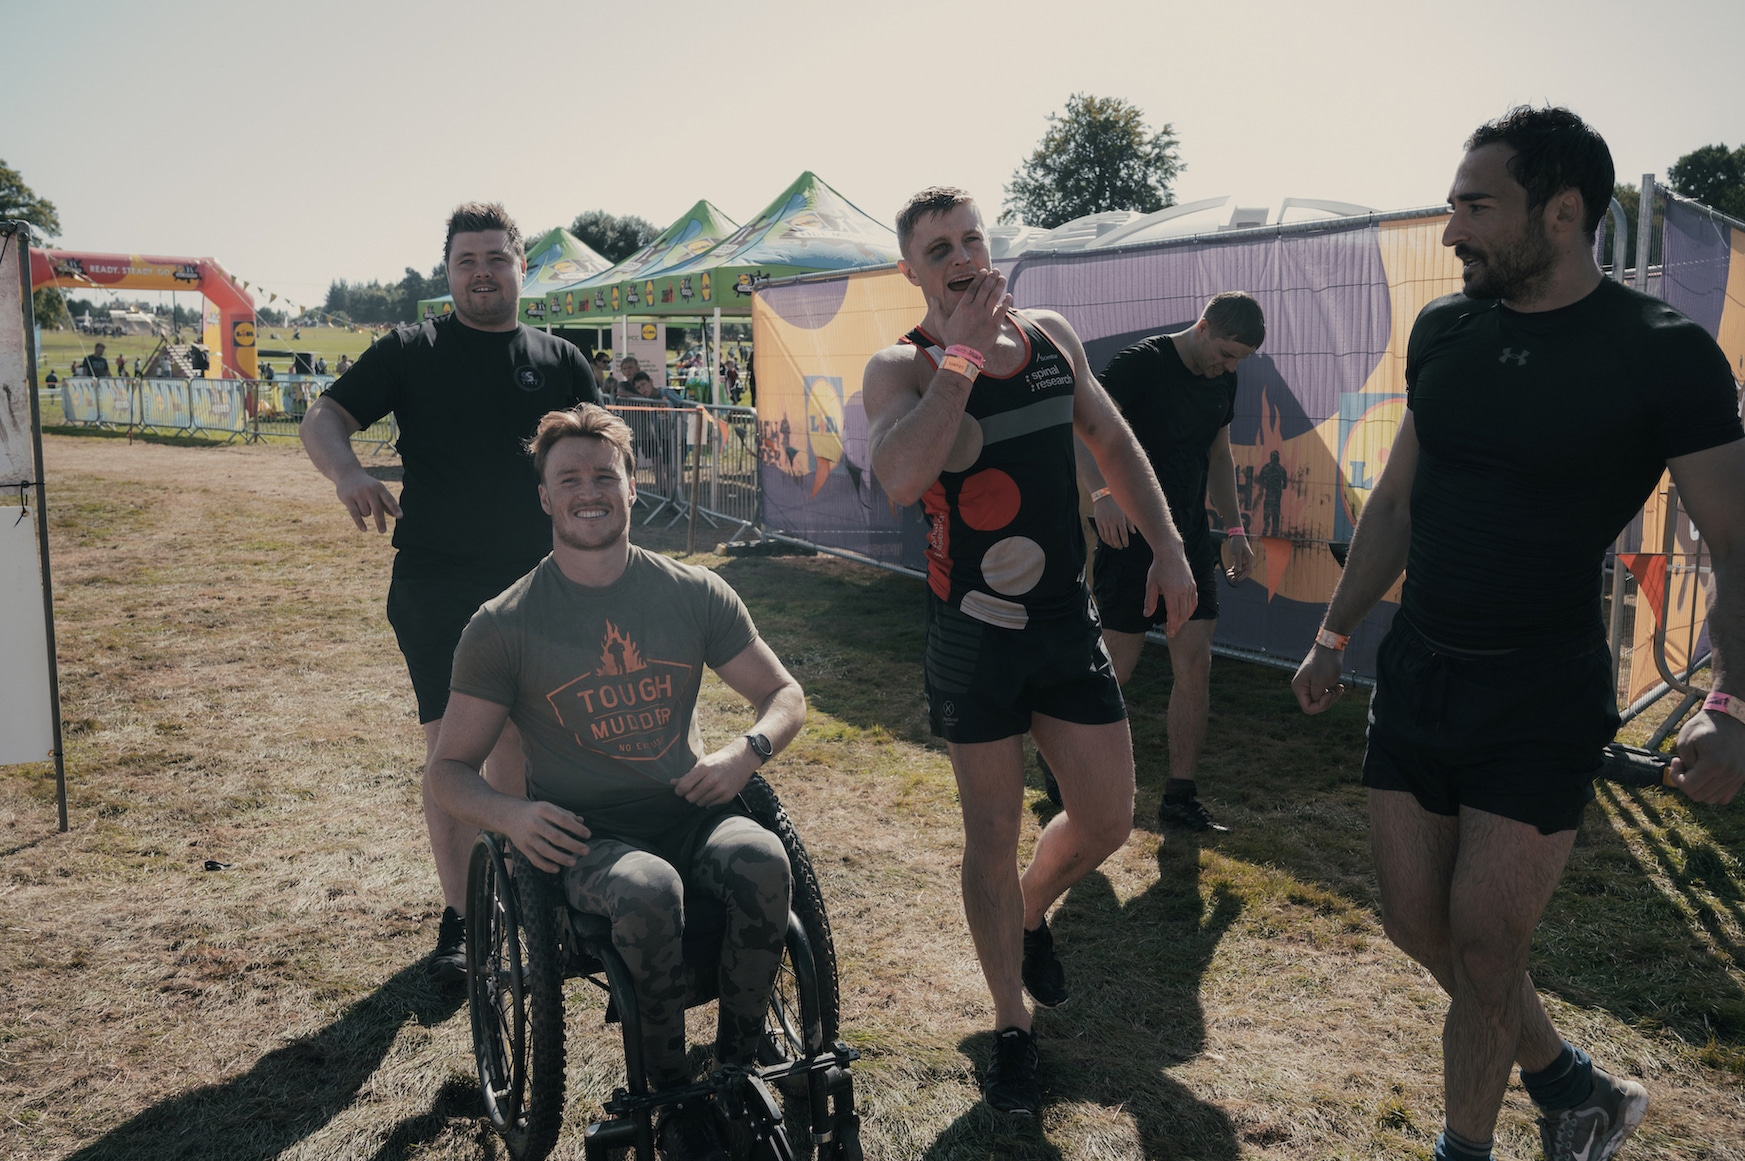 Josh in his wheelchair with four other young men standing around him at a Tough Mudder competition.